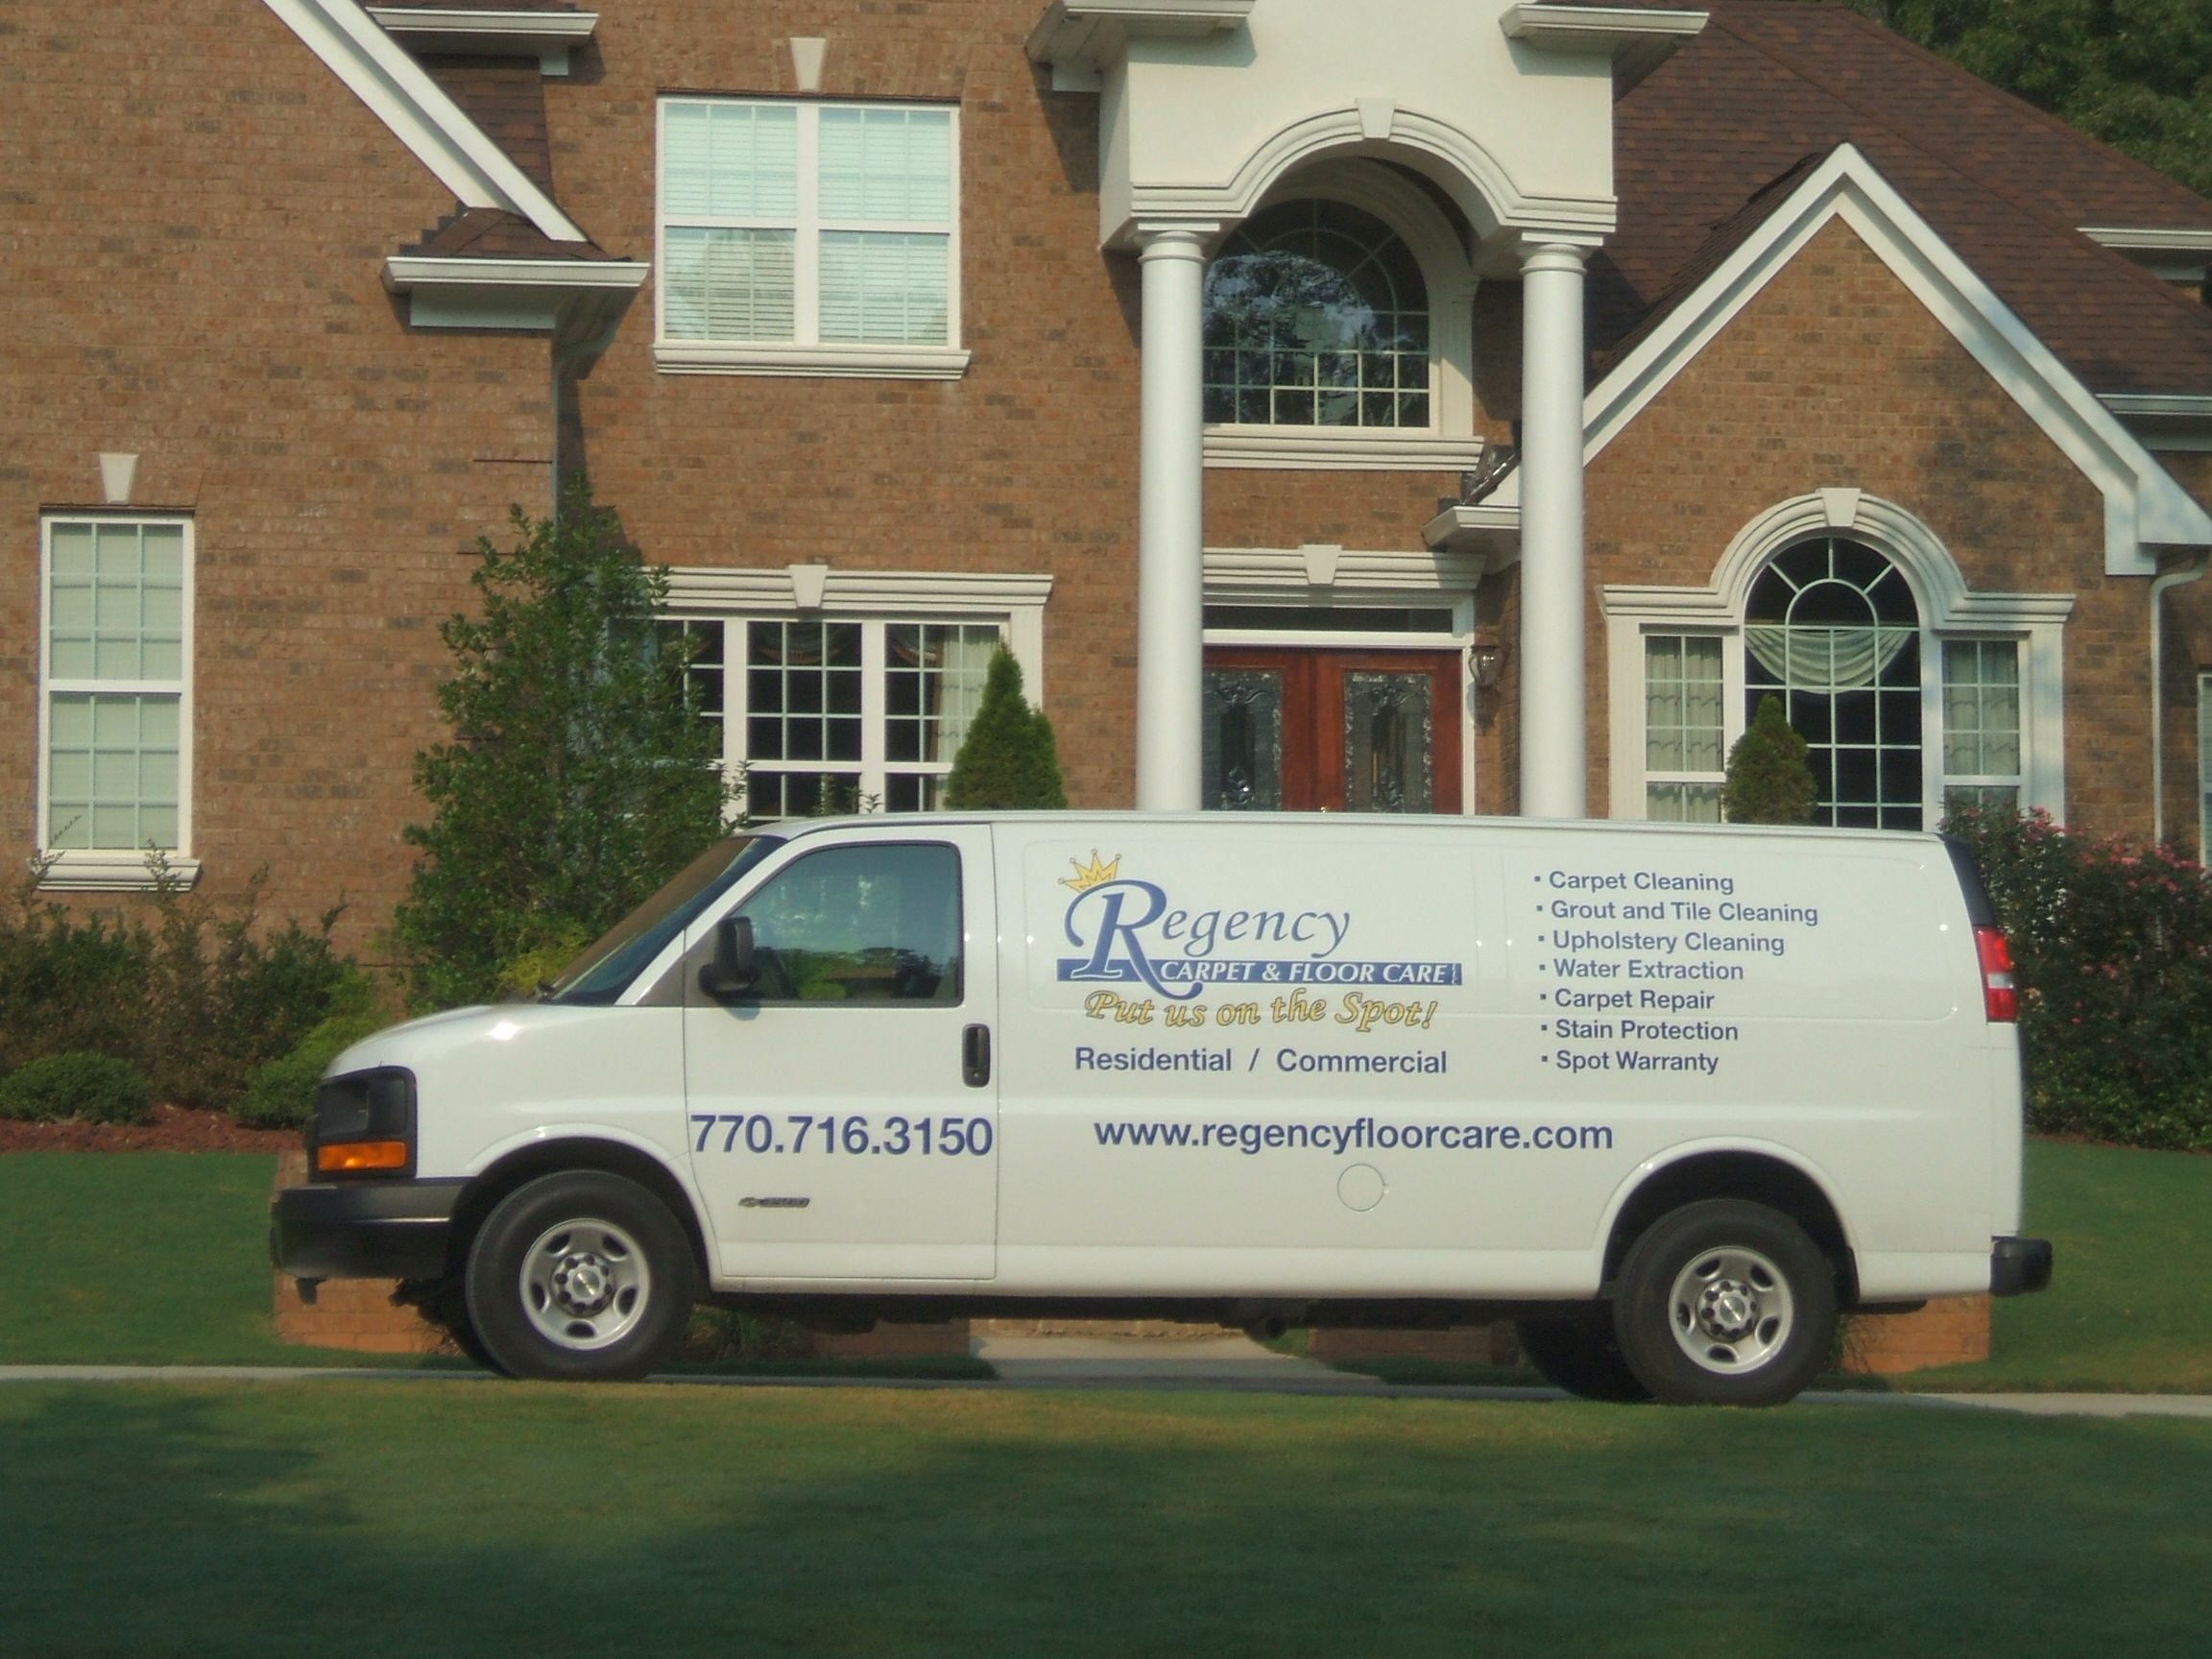 Best Carpet Cleaner In Fayetteville Peachtree City Sharpsburg Newnan Ga Putusonthespot Com Stain Protection Cleaning Upholstery Carpet Repair